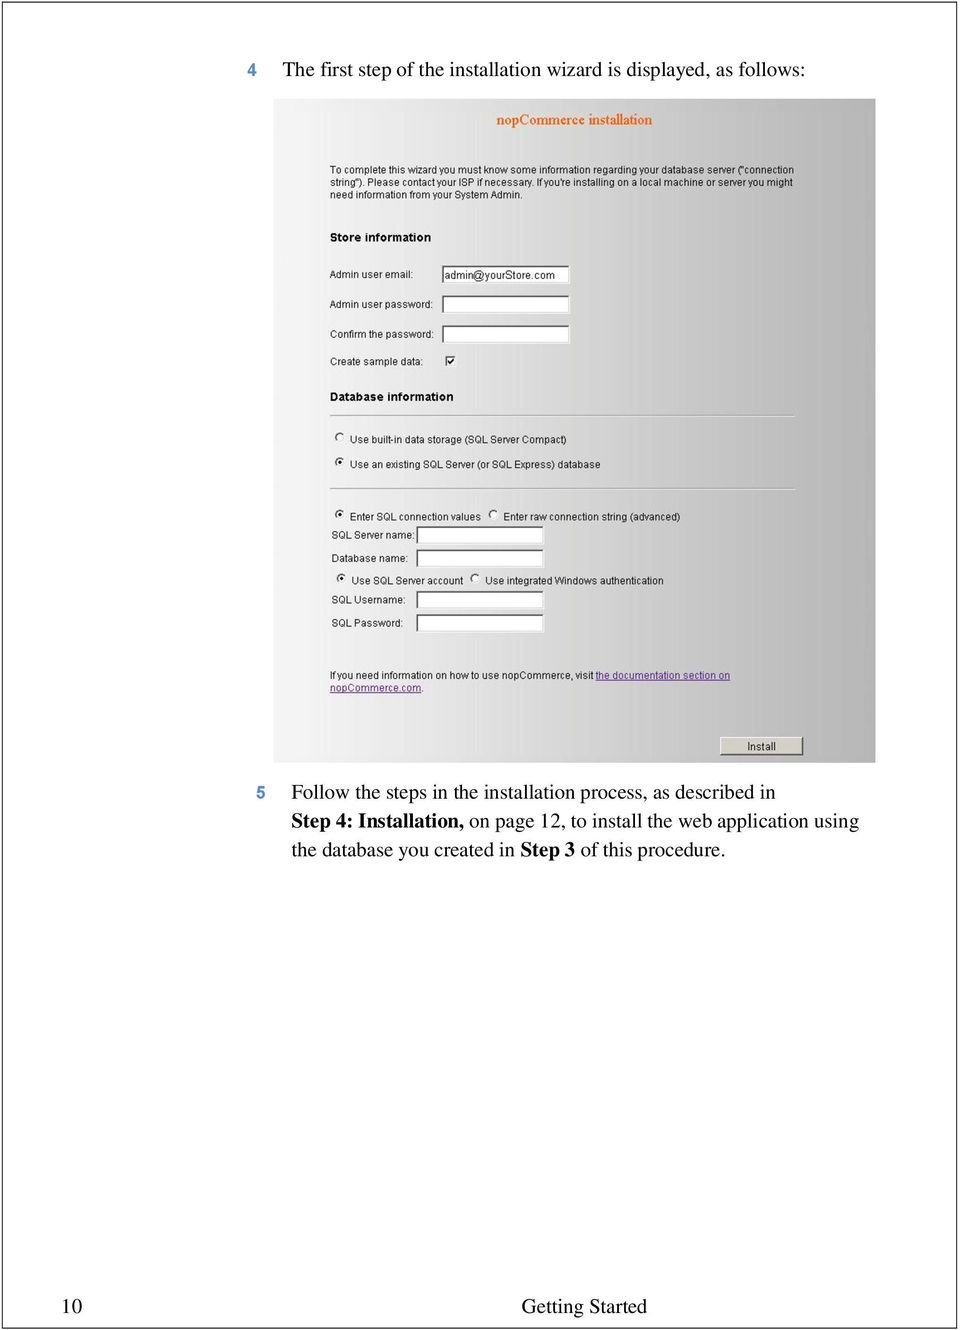 4: Installation, on page 12, to install the web application using the